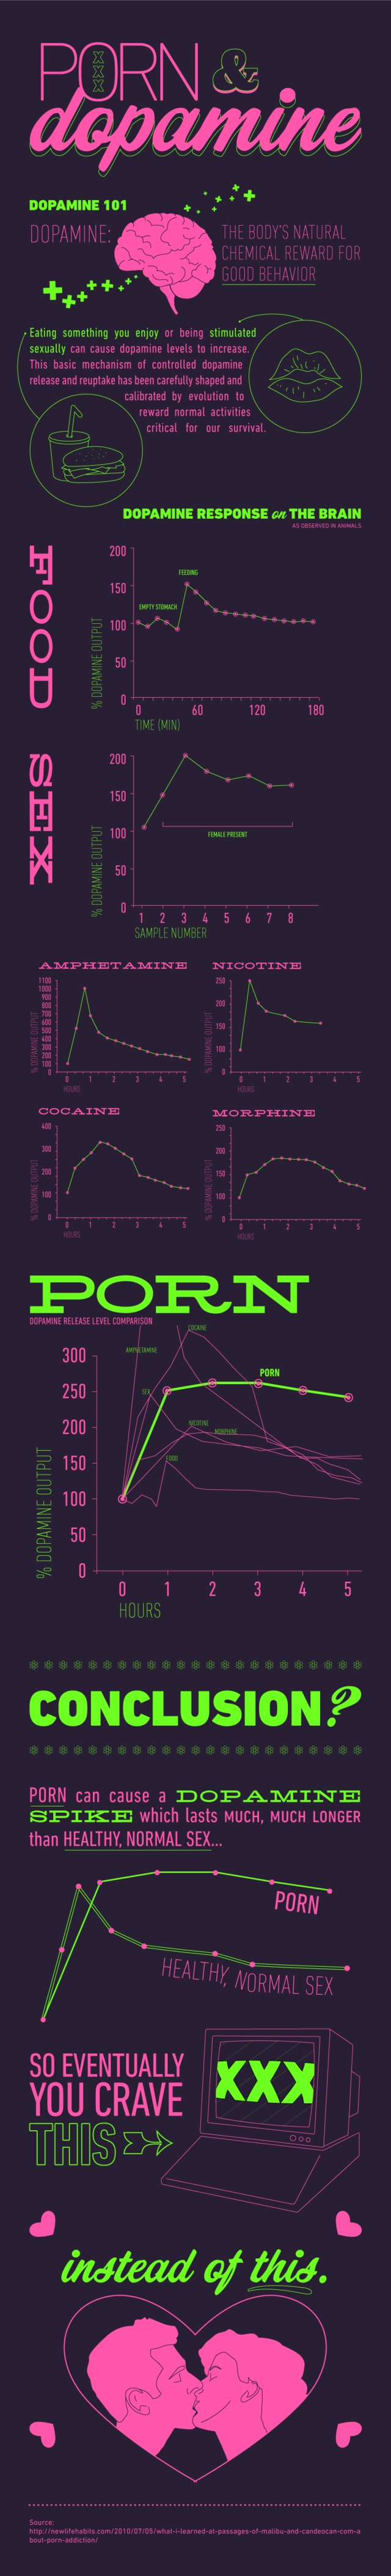 com porn porn effects final infographic viewing dopamine levels